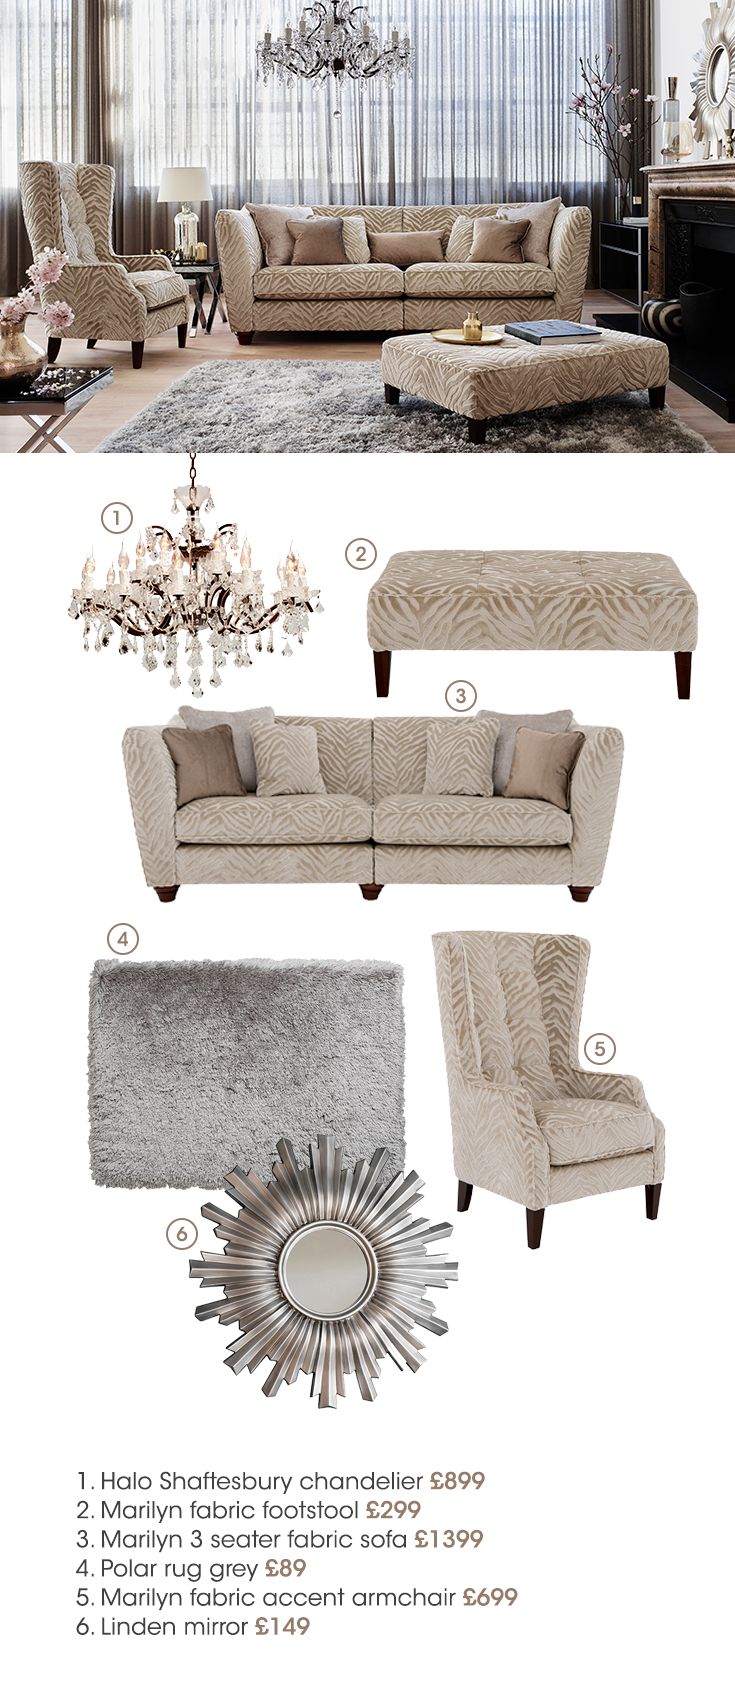 The Hollywood Collection By Furniture Village Shop The Brand New Range Now Home N Decor Living Room Designs House Interior